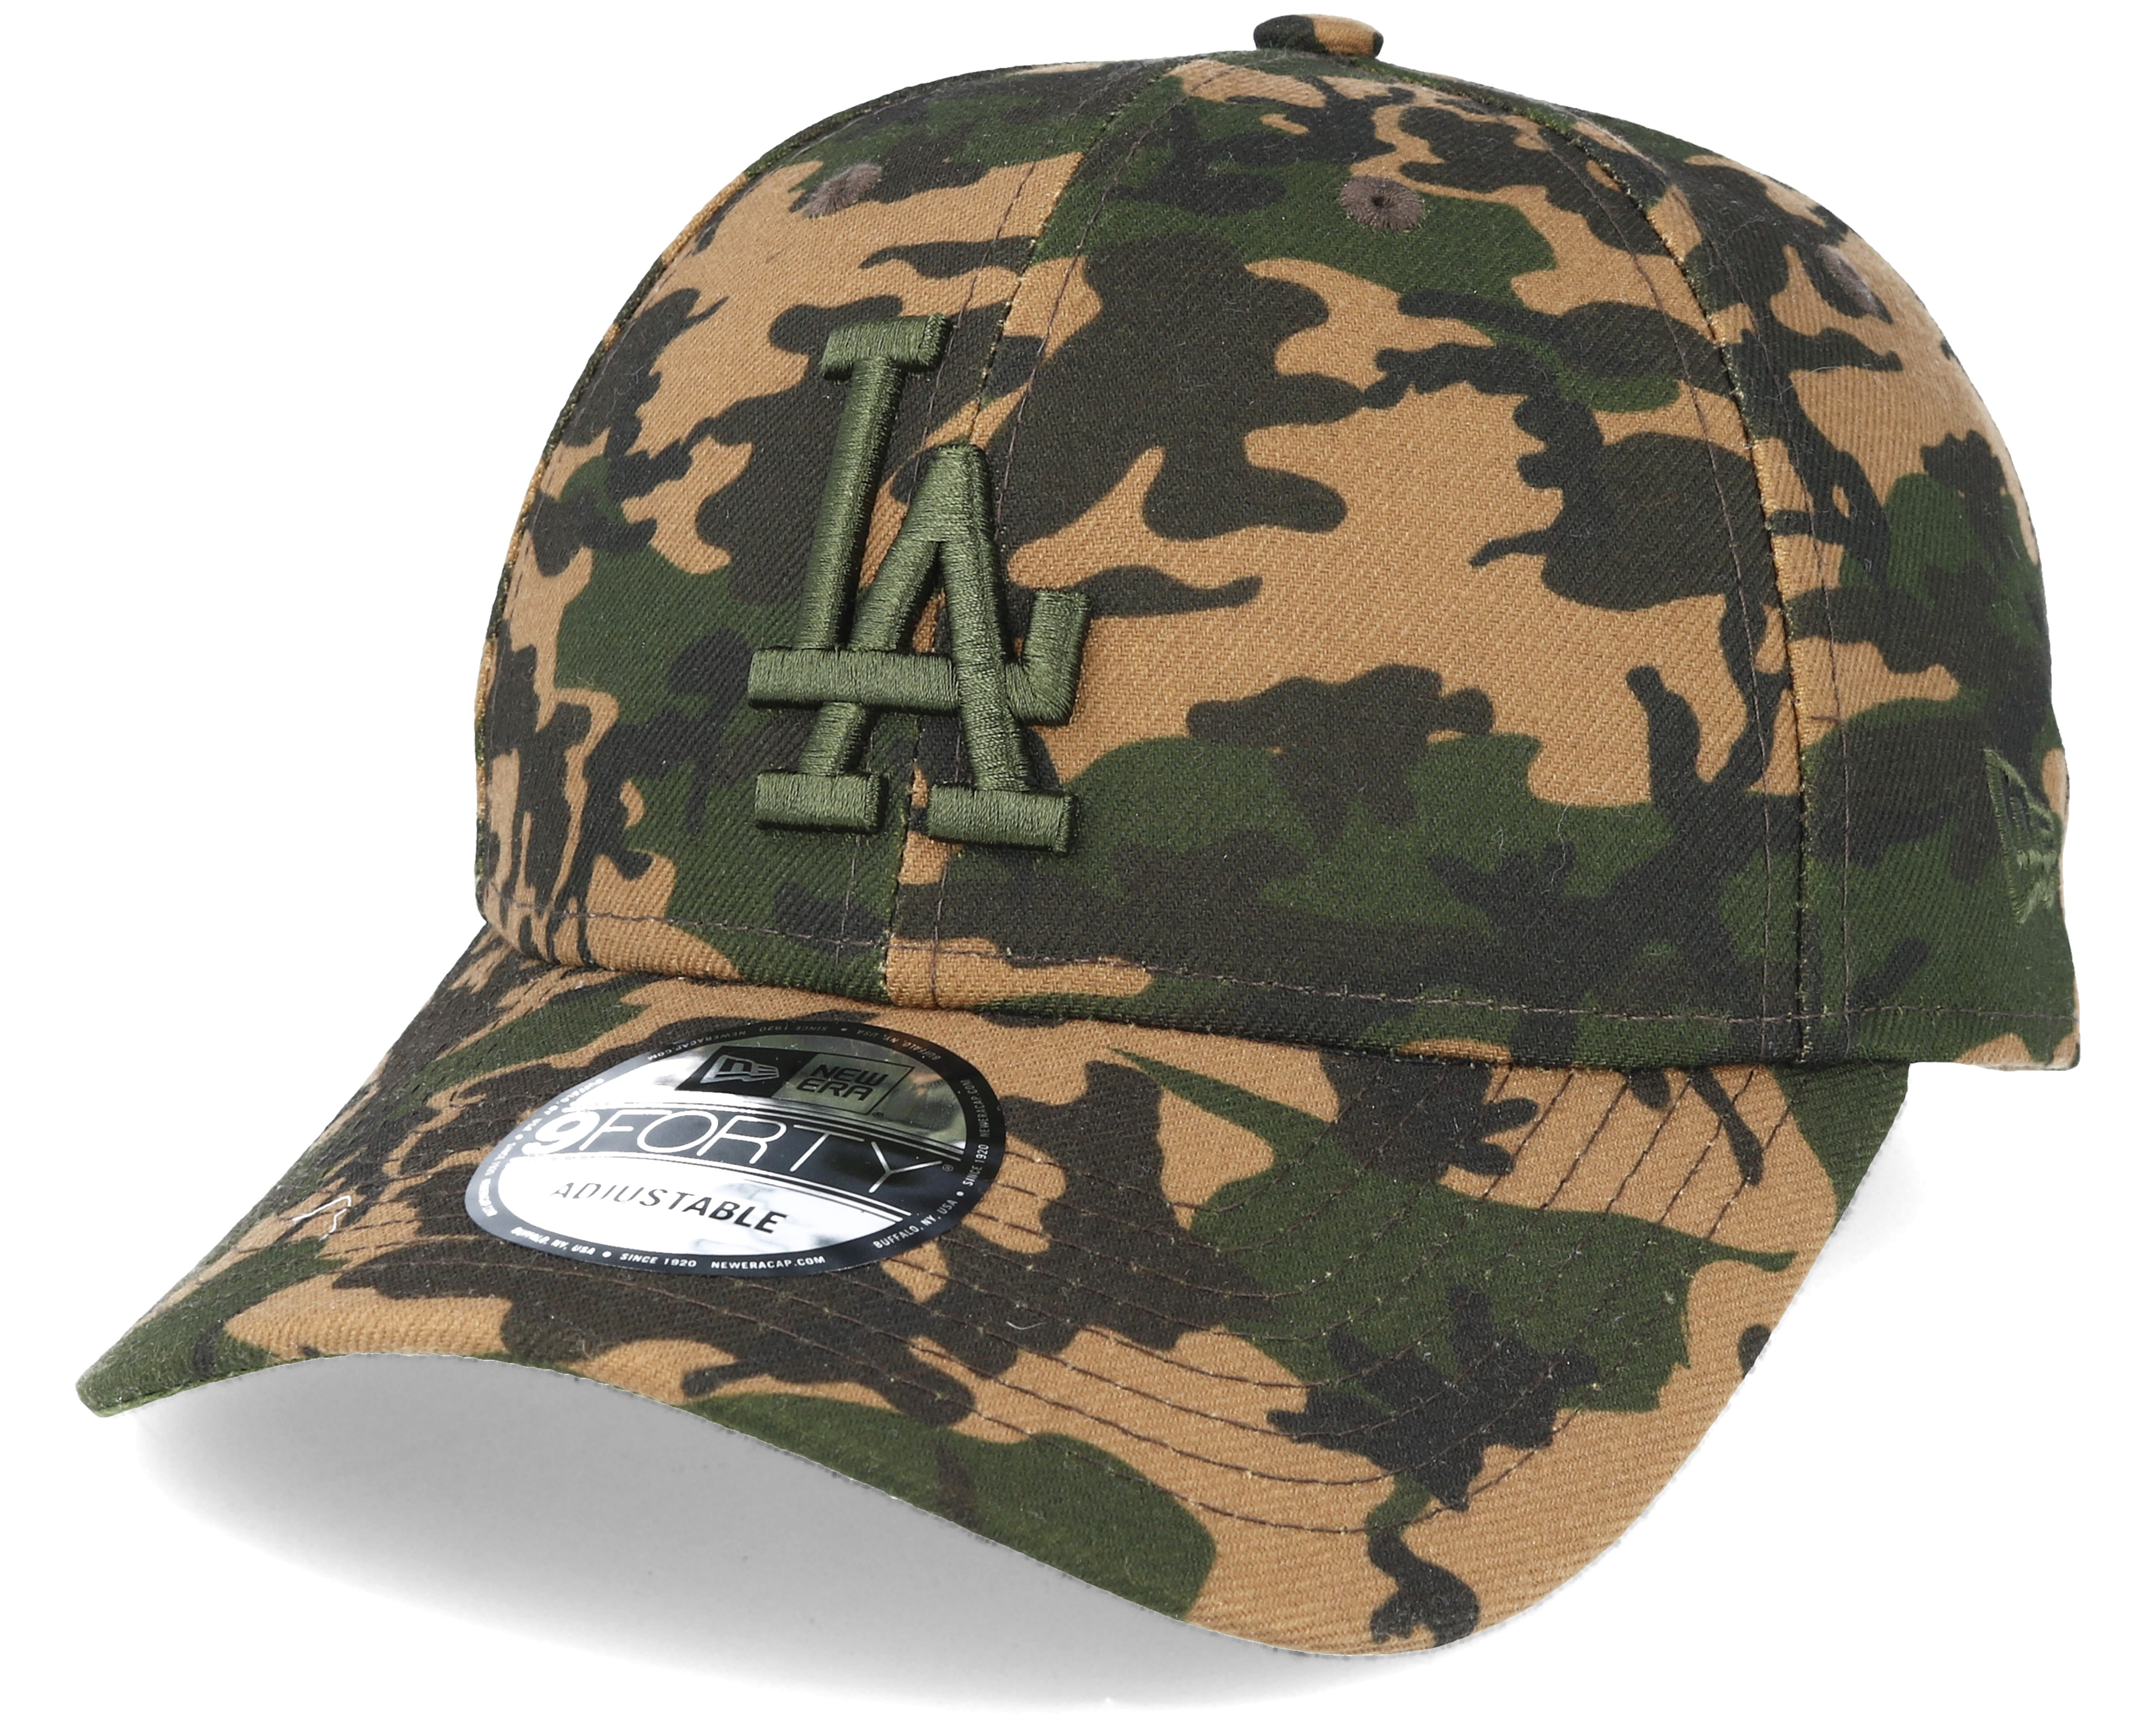 los angeles dodgers seasonal 9forty camo new era caps. Black Bedroom Furniture Sets. Home Design Ideas